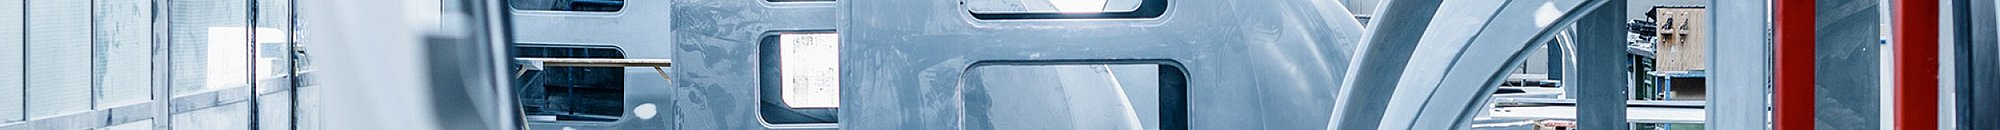 INTELLIGENT, HIGH-PERFORMANCE COMPOSITES FOR PASSENGER TRANSPORT